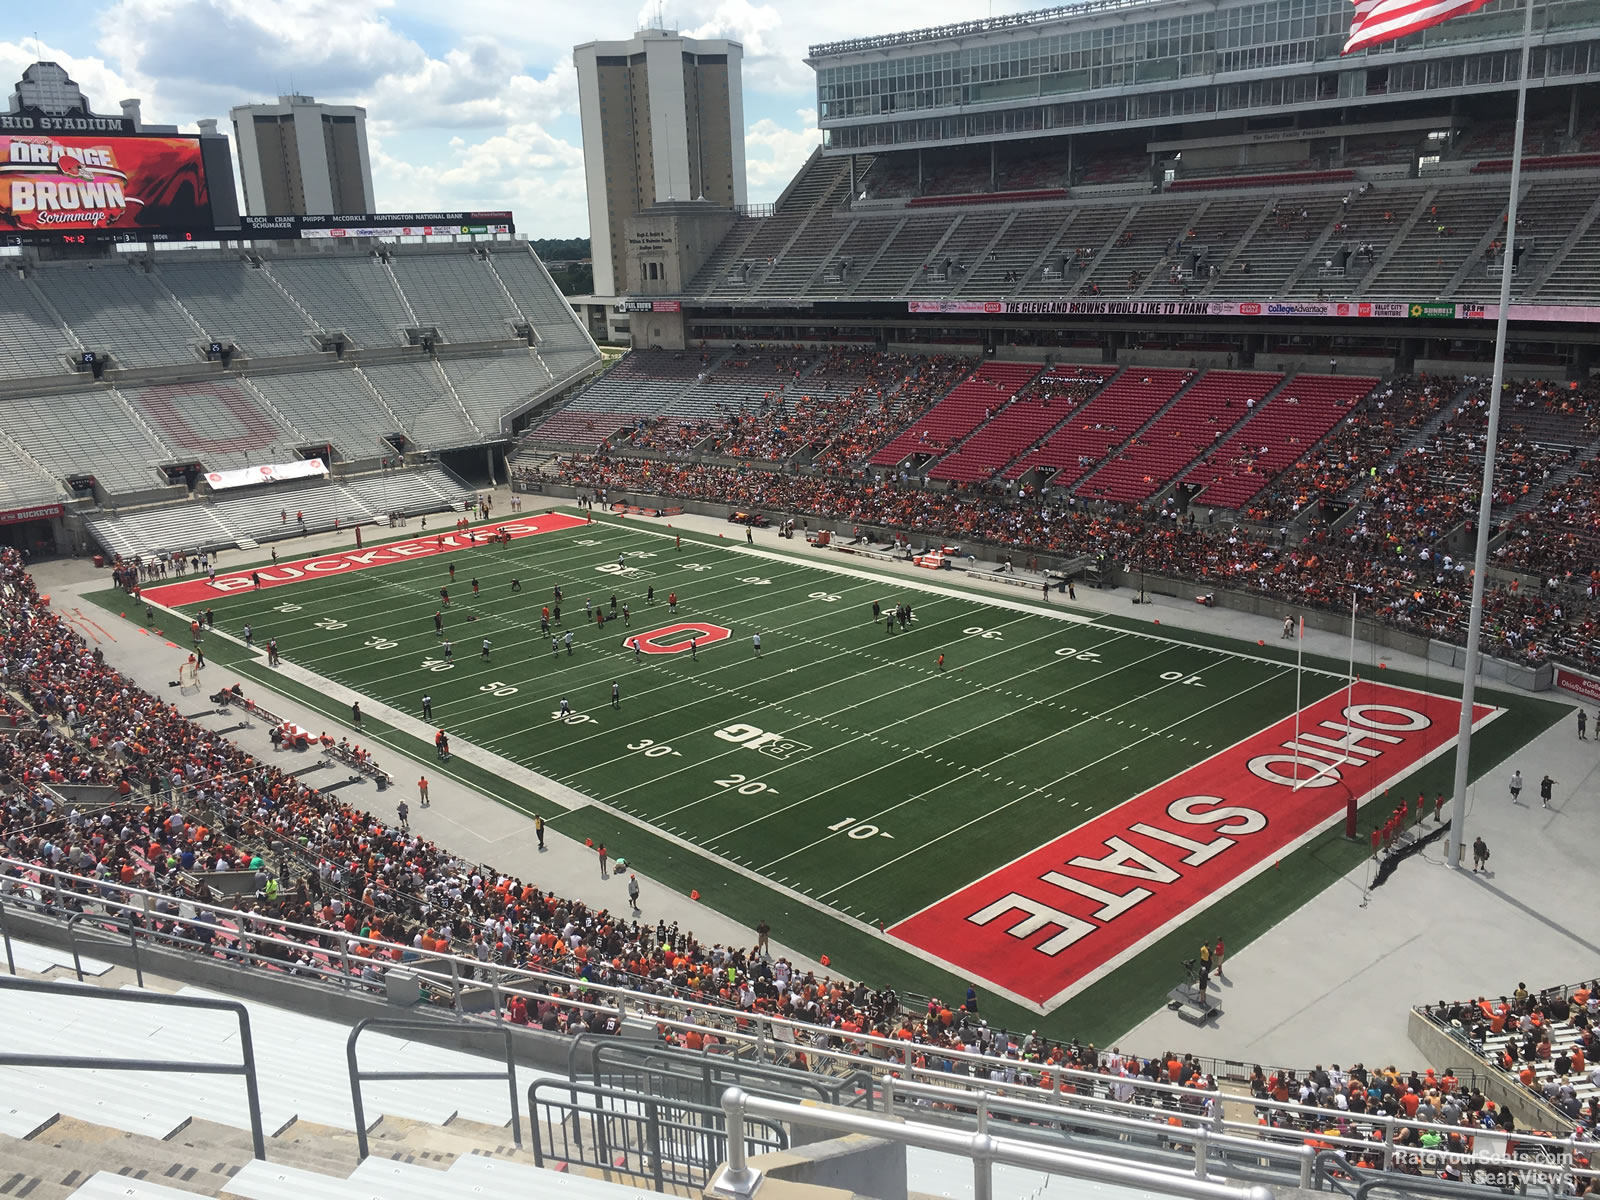 Ohio Stadium Seating Chart With Rows And Seat Numbers